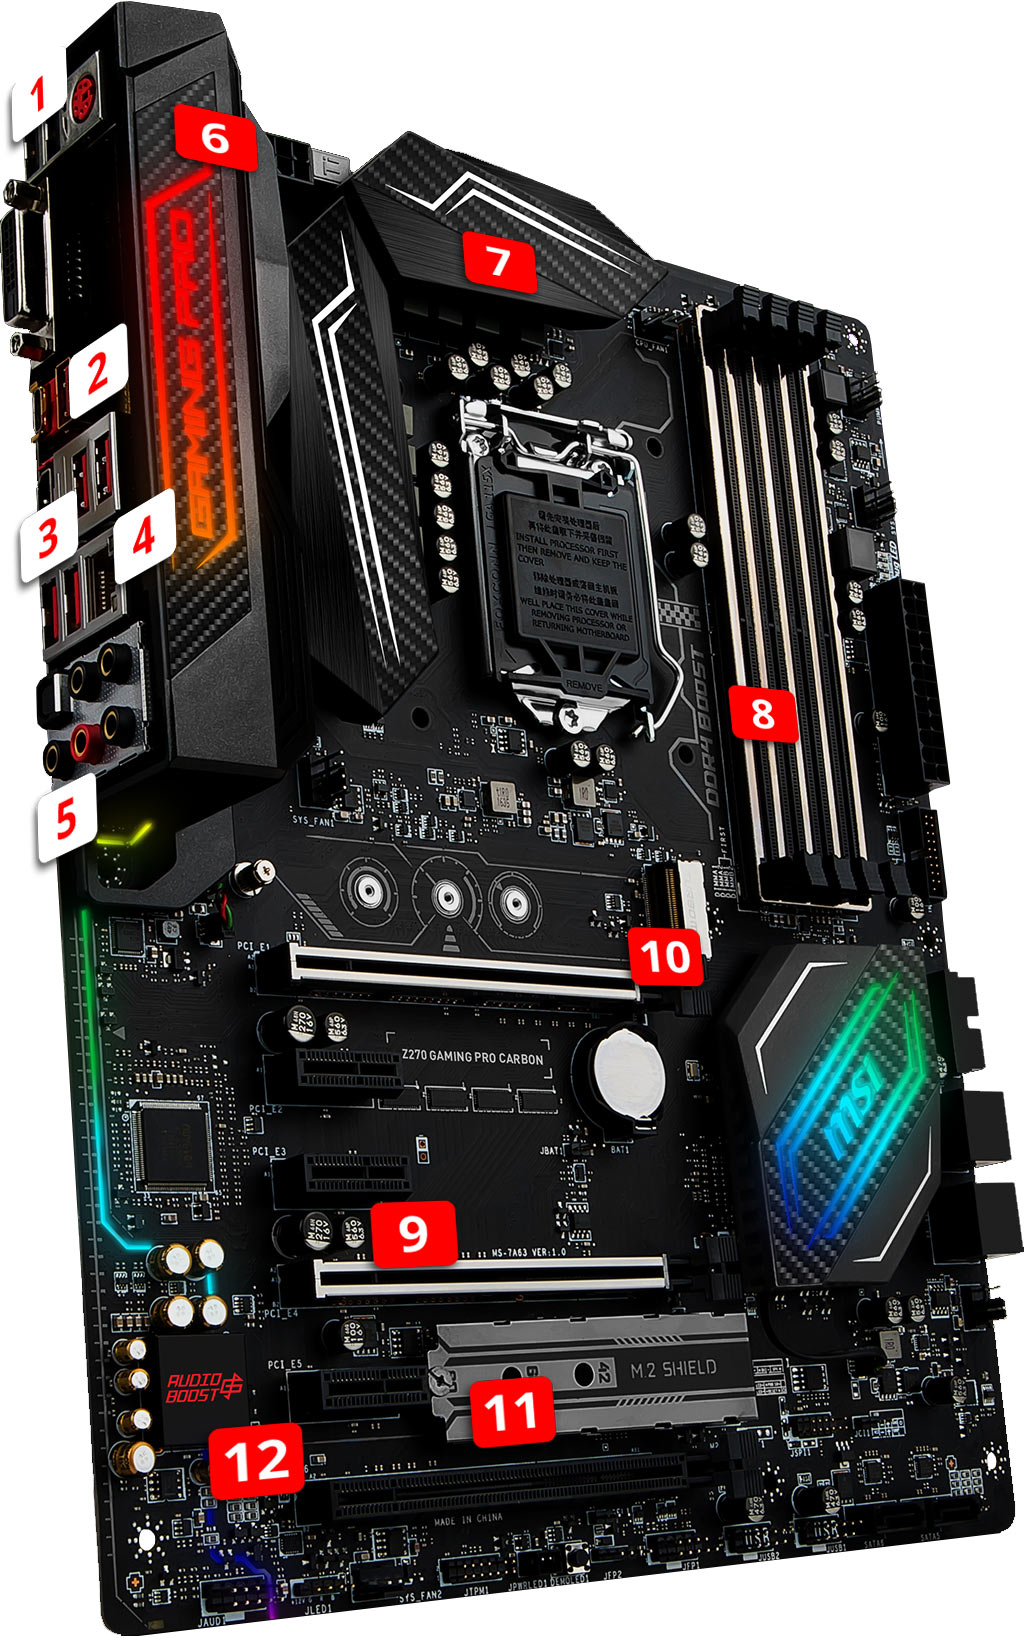 MSI Z270 GAMING Pro Carbon overview